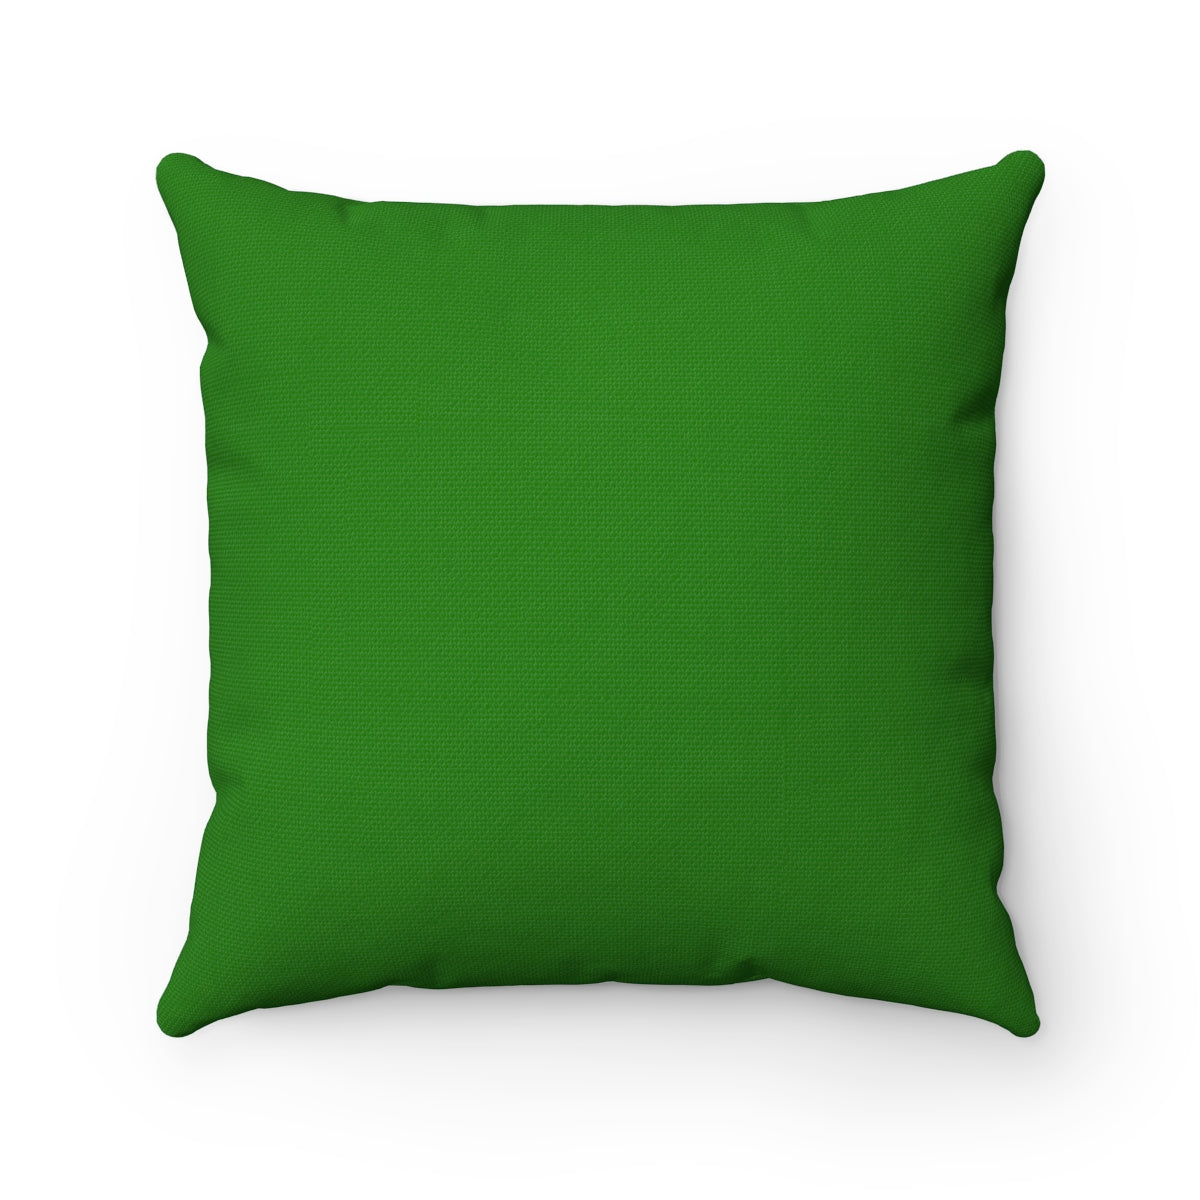 Tent Life Pillow: Bright Green